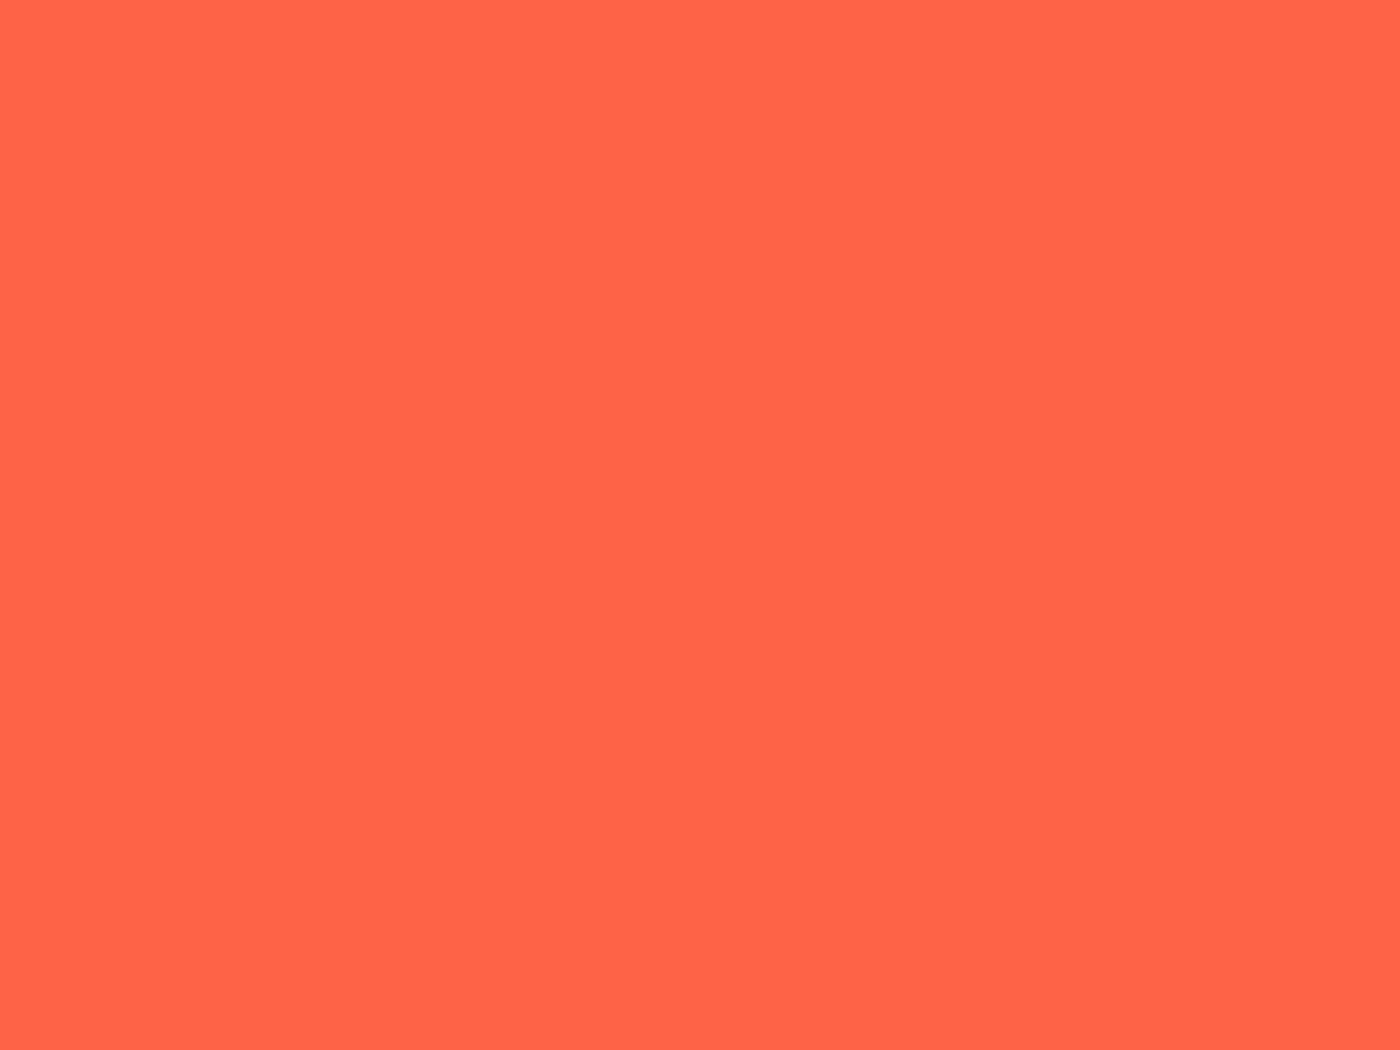 1400x1050 Tomato Solid Color Background